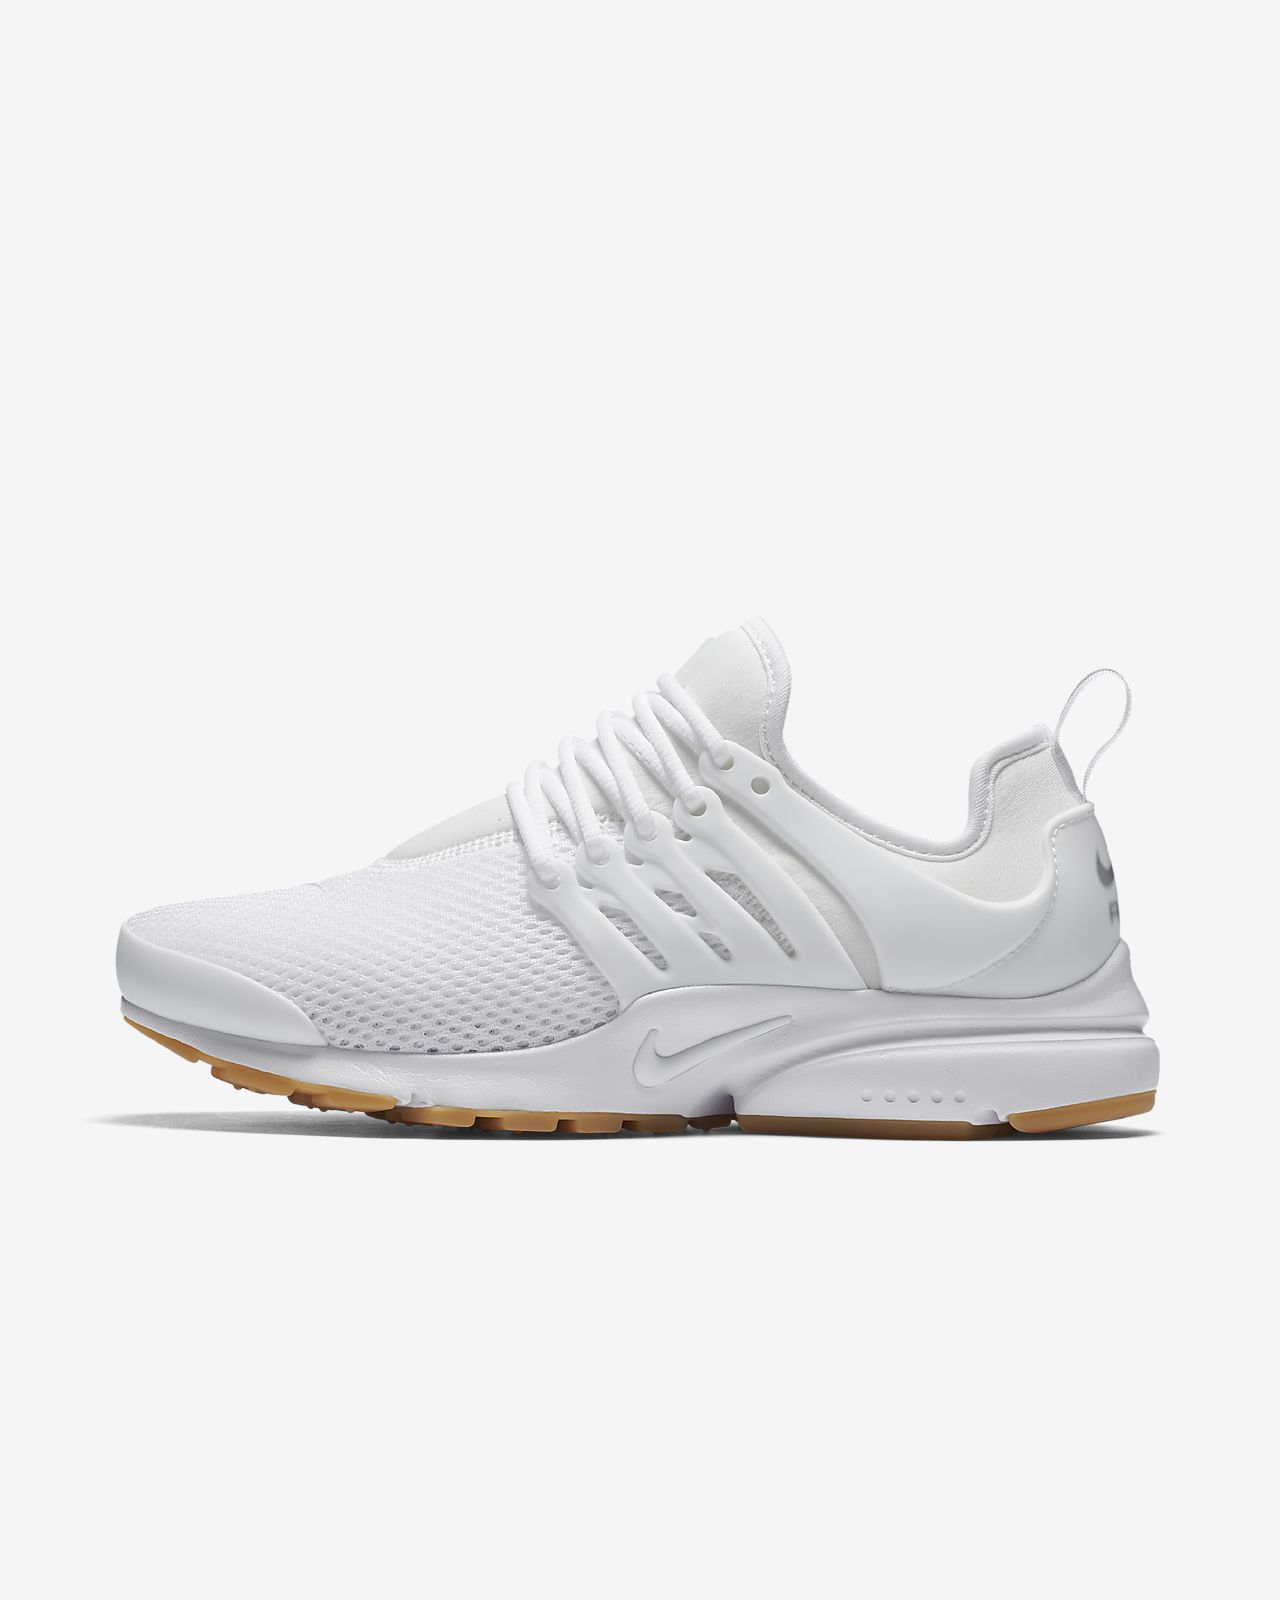 promo code 44051 f7031 White Nike Presto Womens : Buy Nike Sneakers & Shoes | Air ...